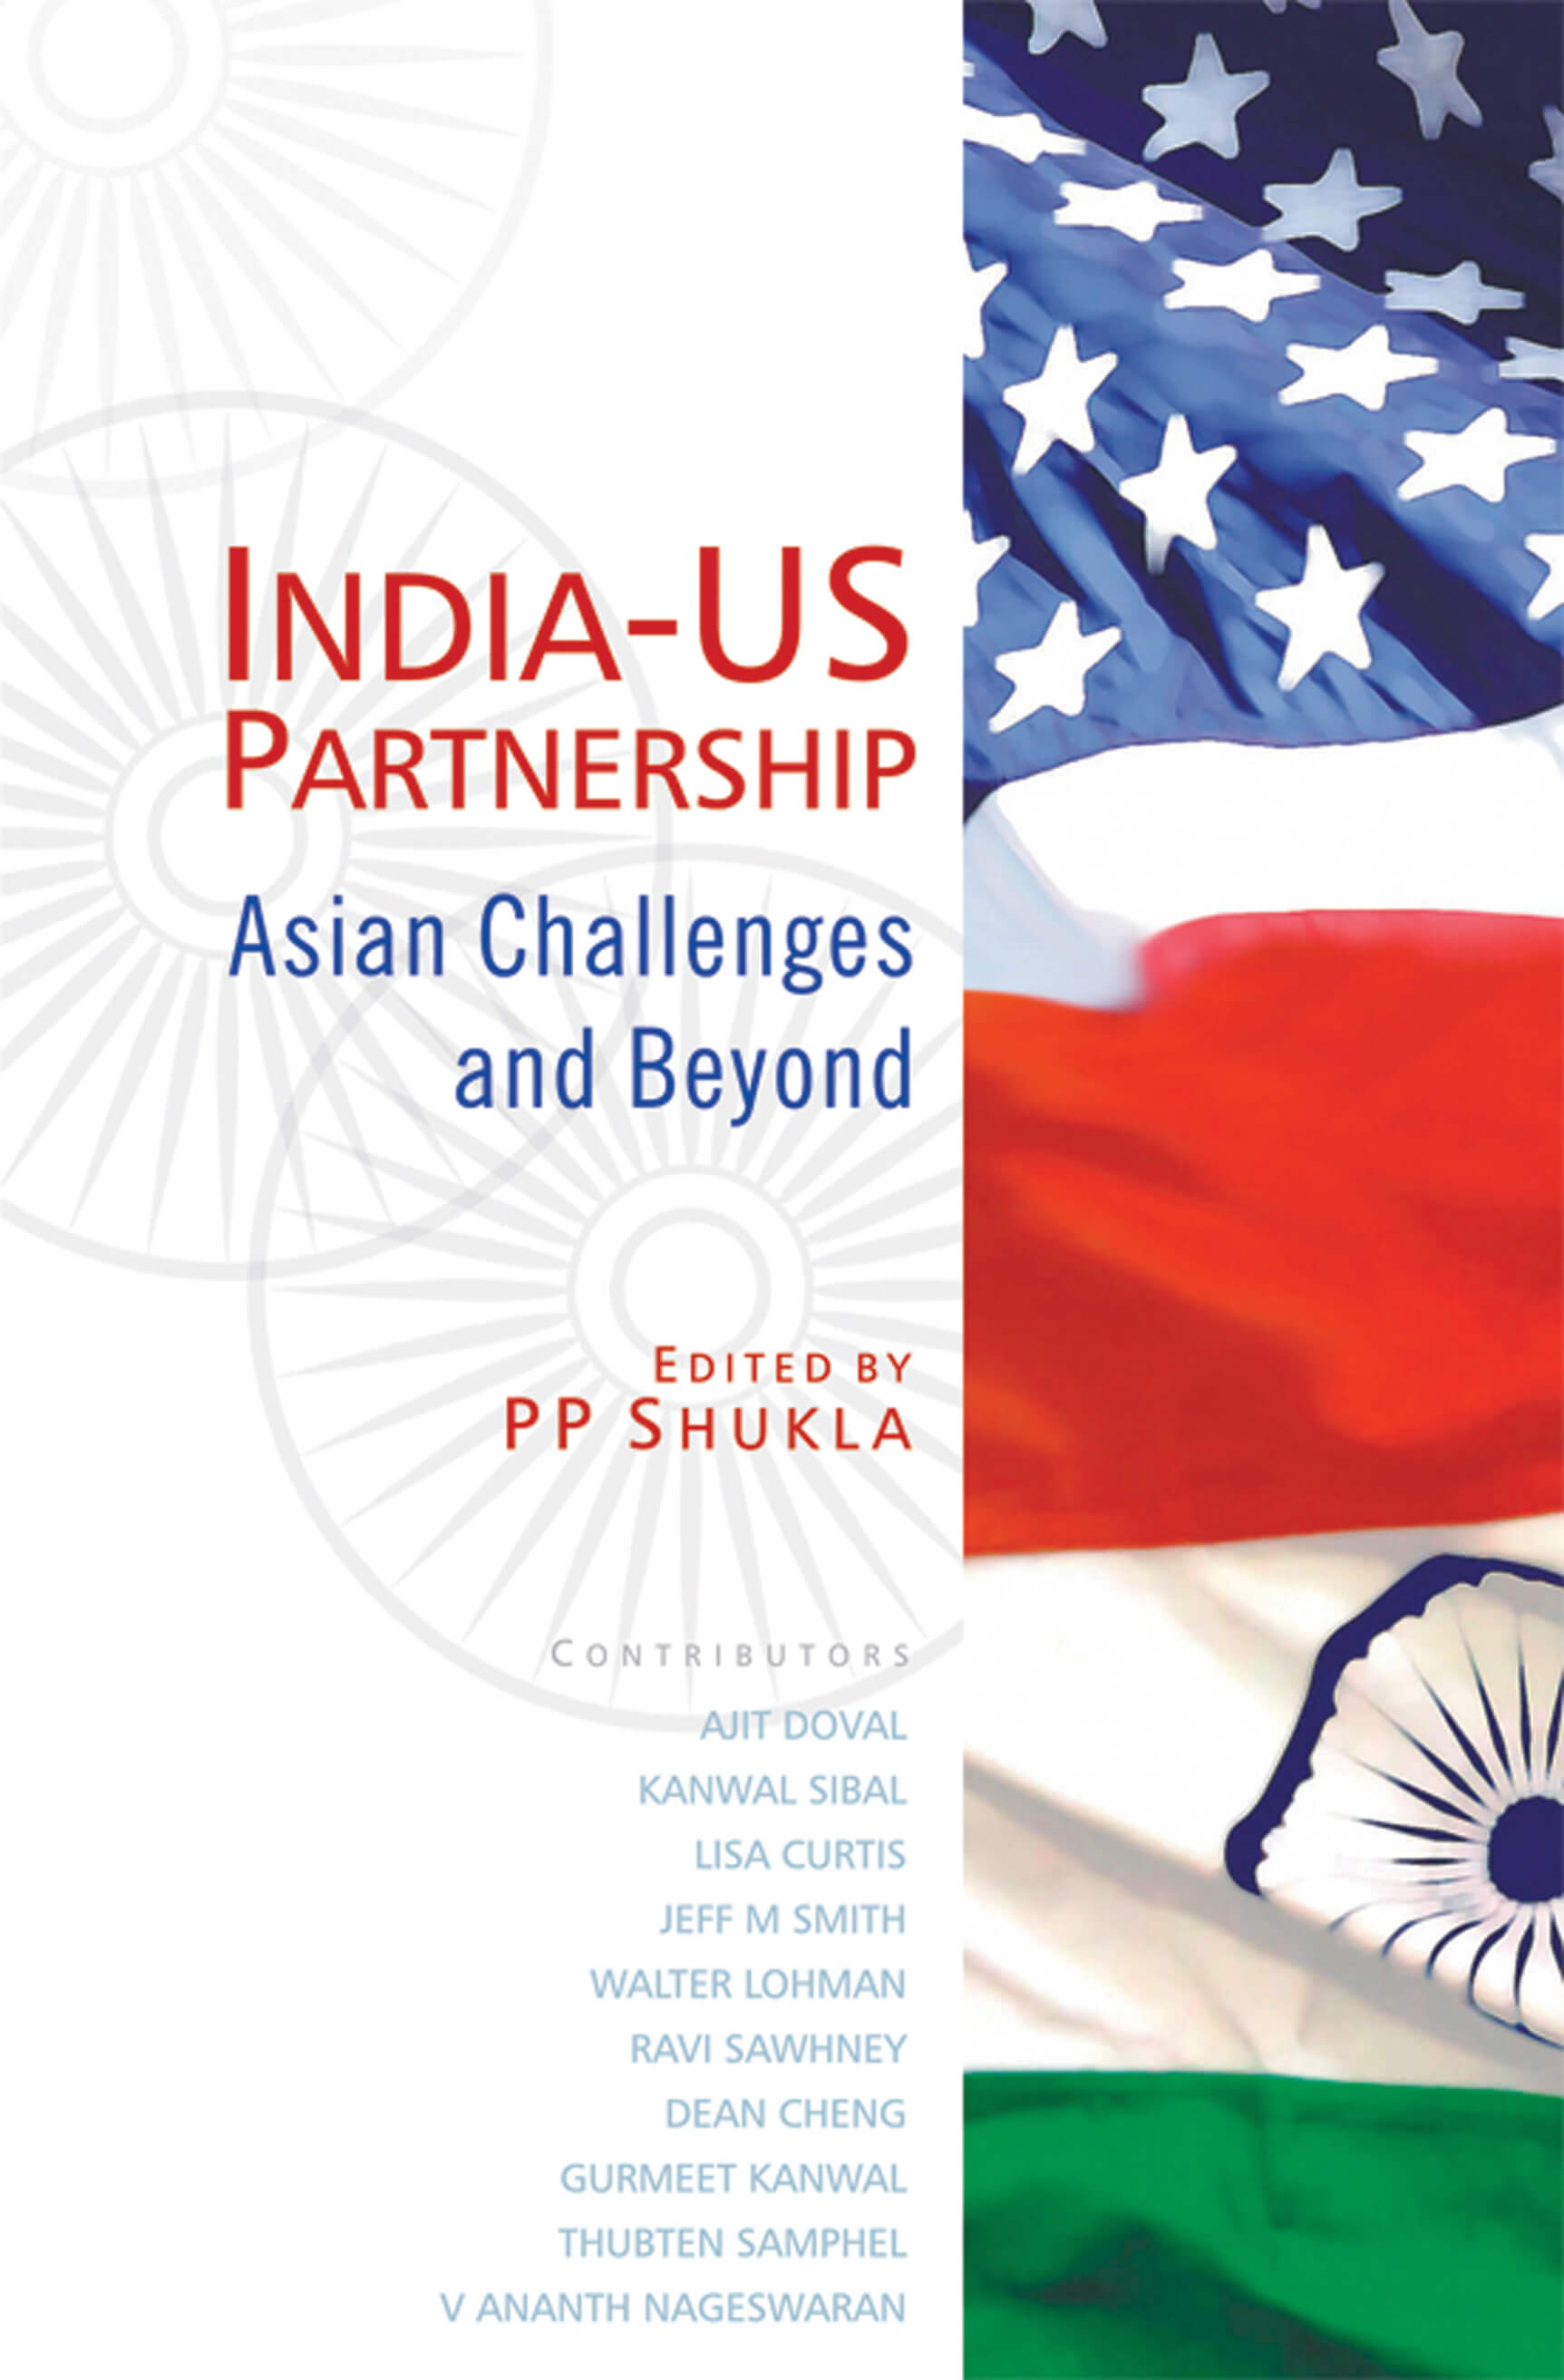 India-US Partnership: Asian Challenges and Beyond